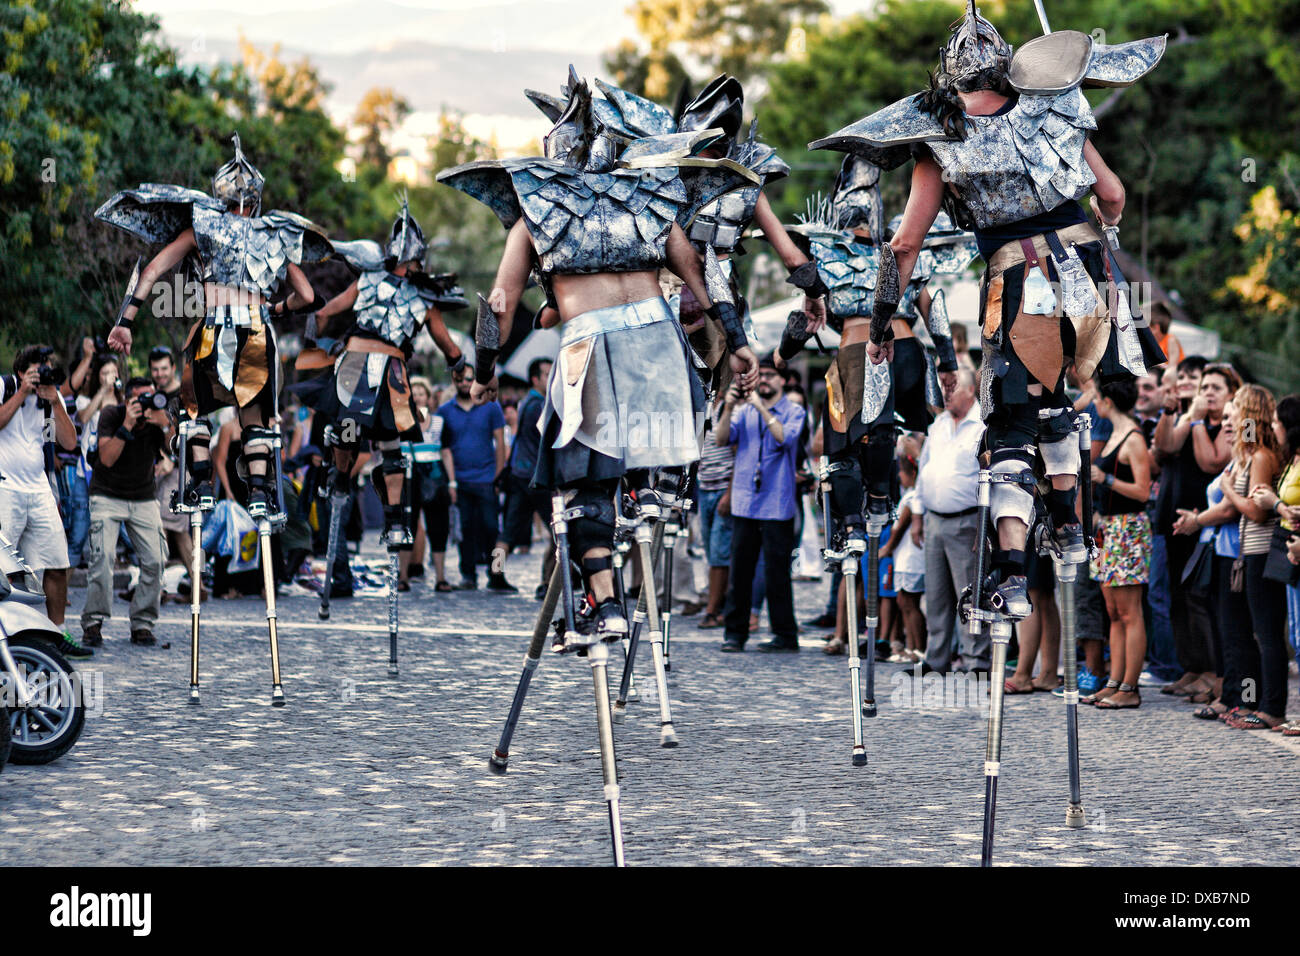 Stilt walkers in the street of Athens, Greece - Stock Image